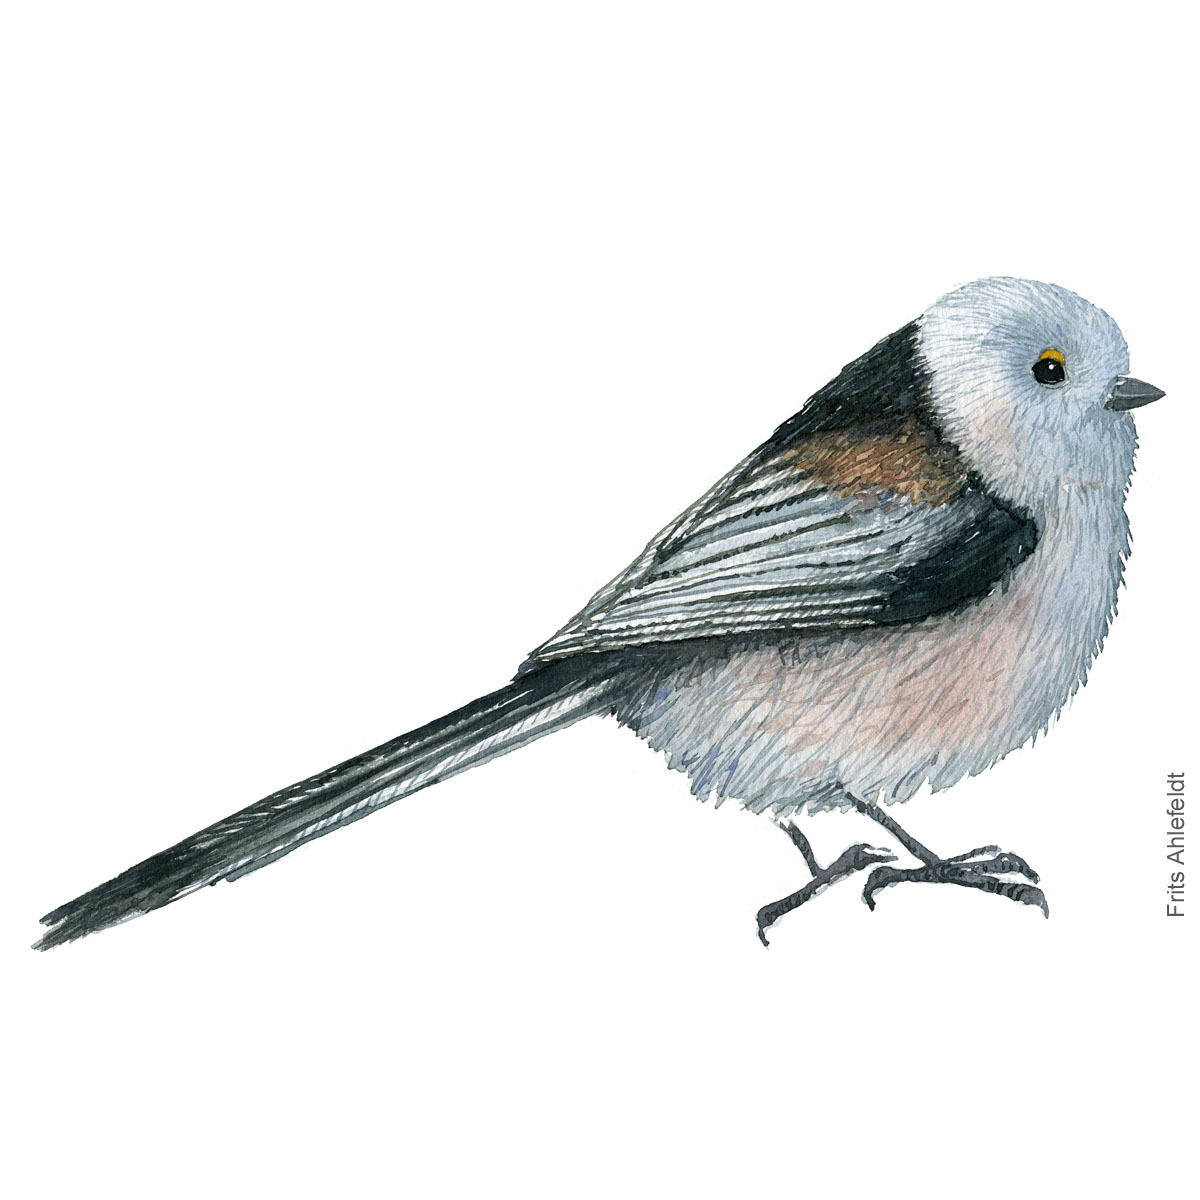 Long tailed tit. Halemejse akvarel. Watercolor painting by Frits Ahlefeldt